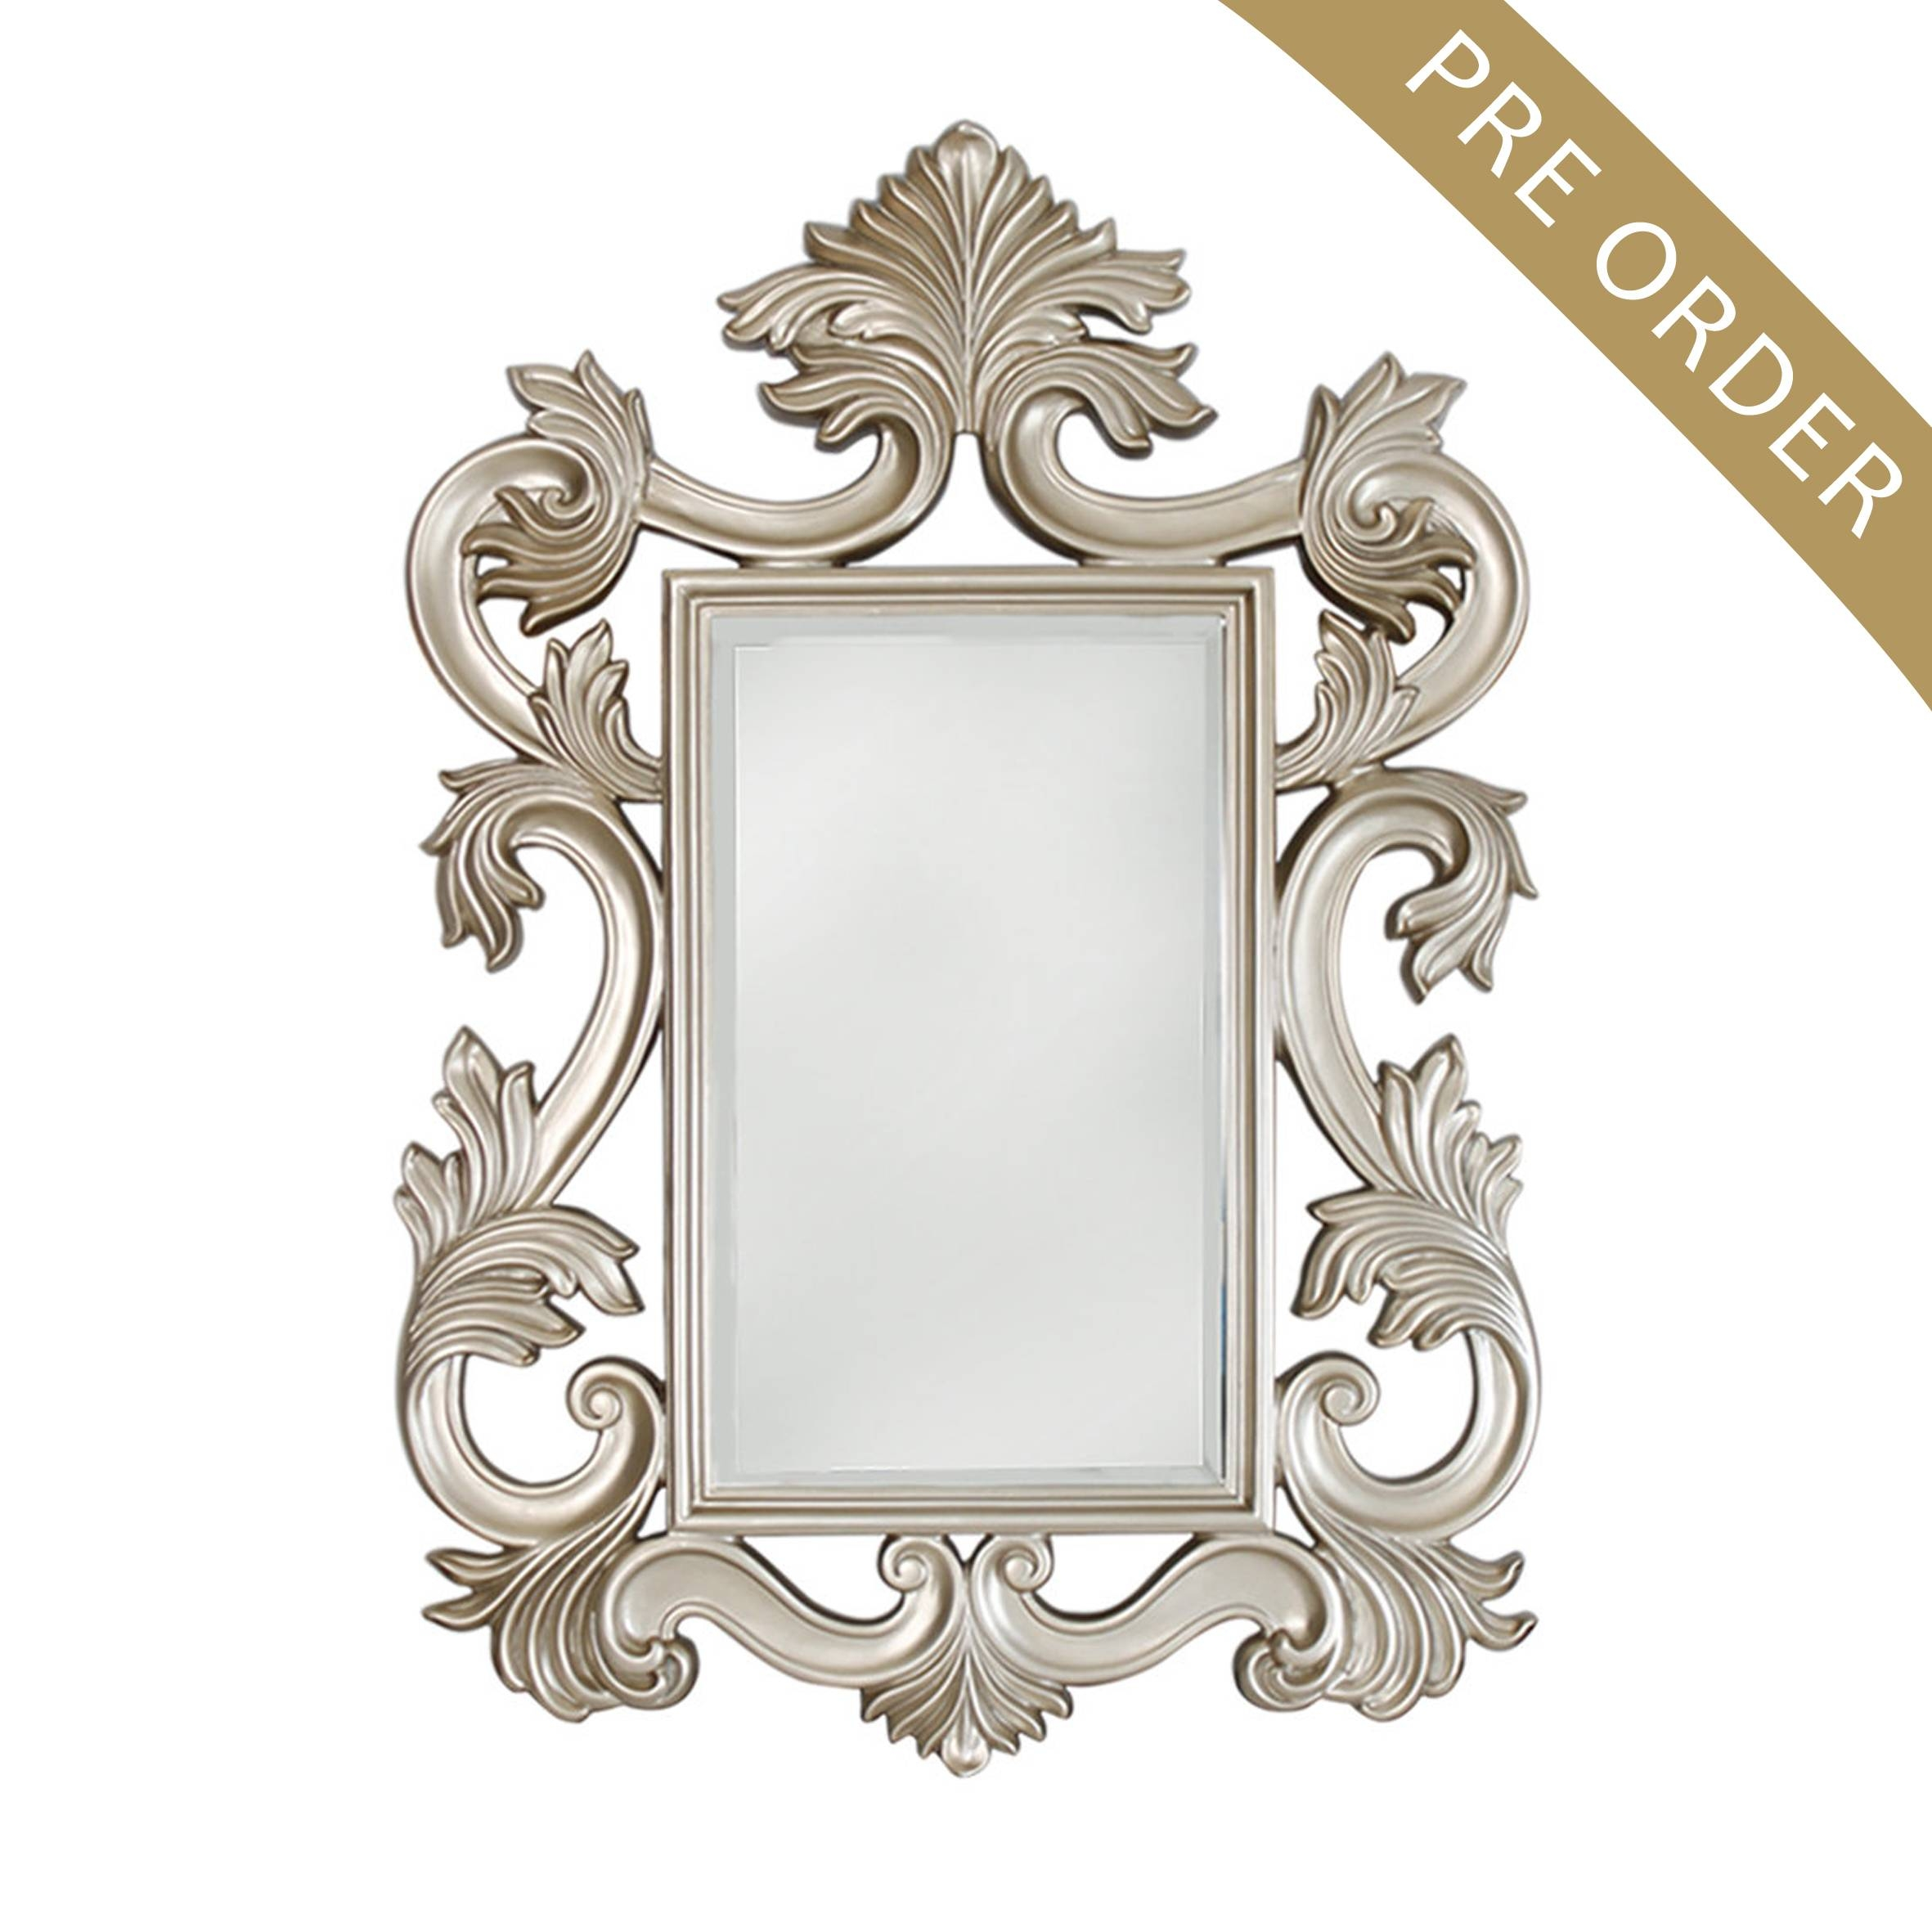 Large Oval Baroque Mirror Wall Acedf – Surripui Throughout Baroque Wall Mirrors (View 9 of 15)